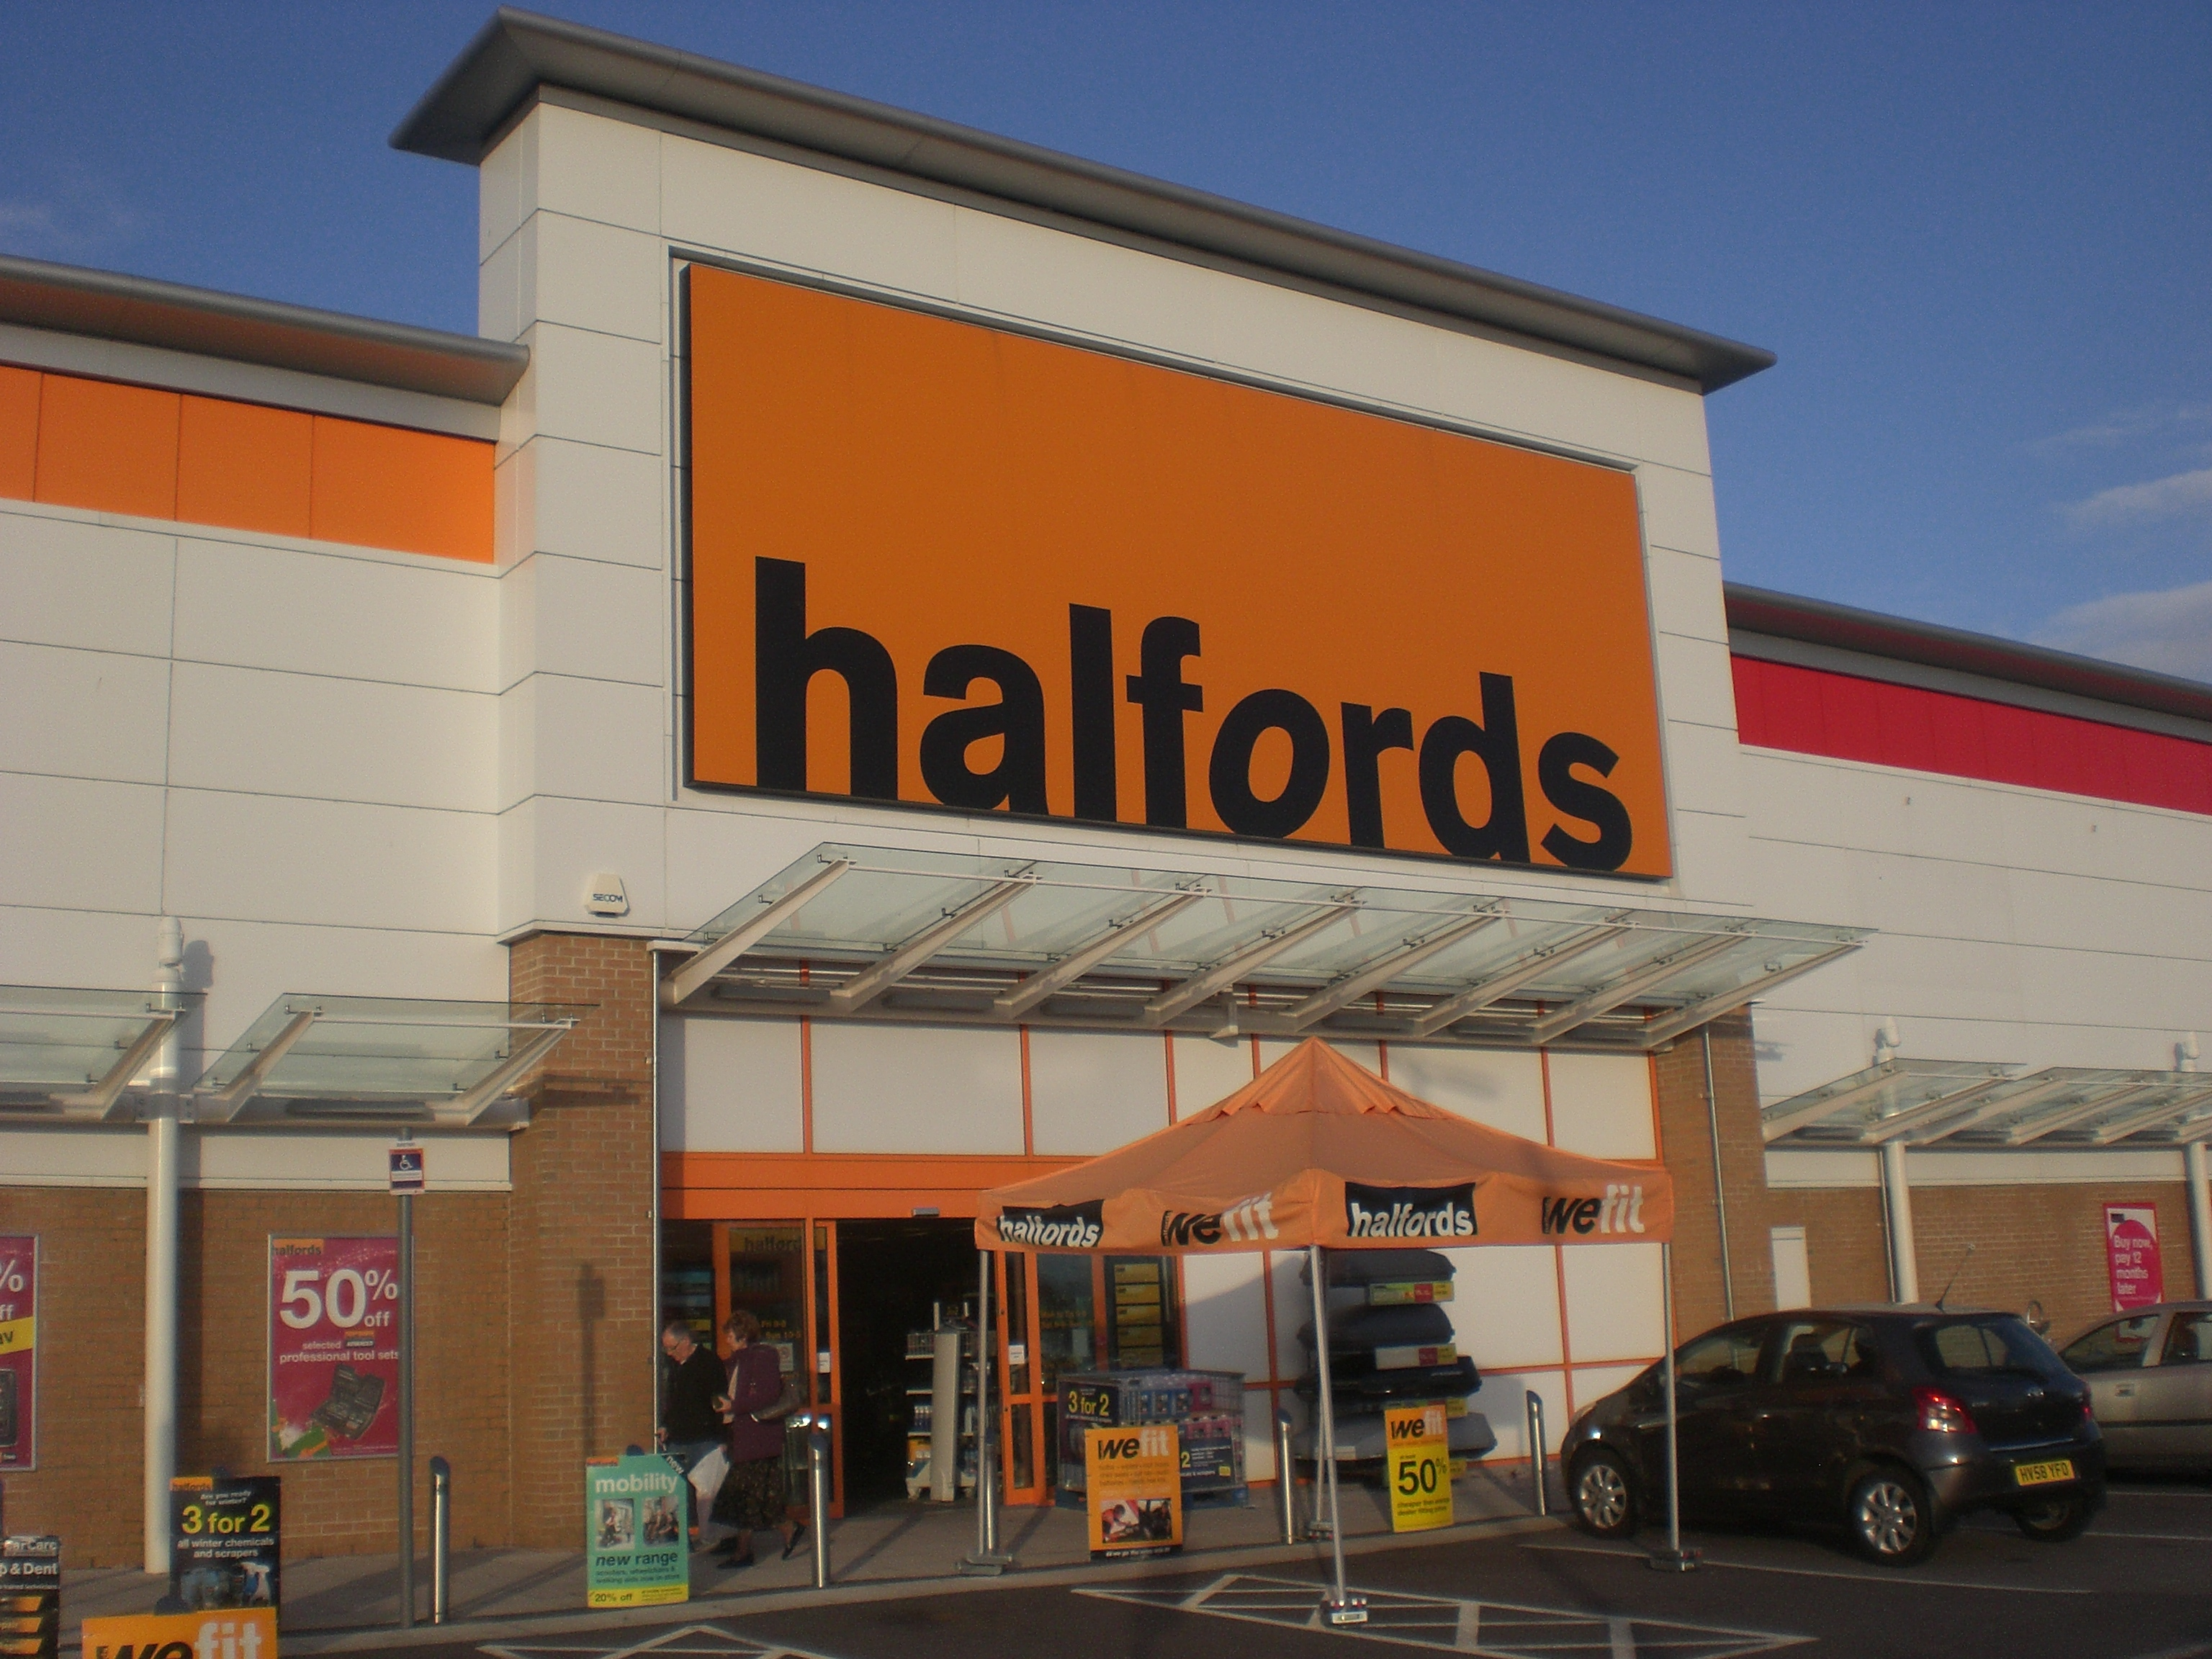 Halfords - Wikipedia